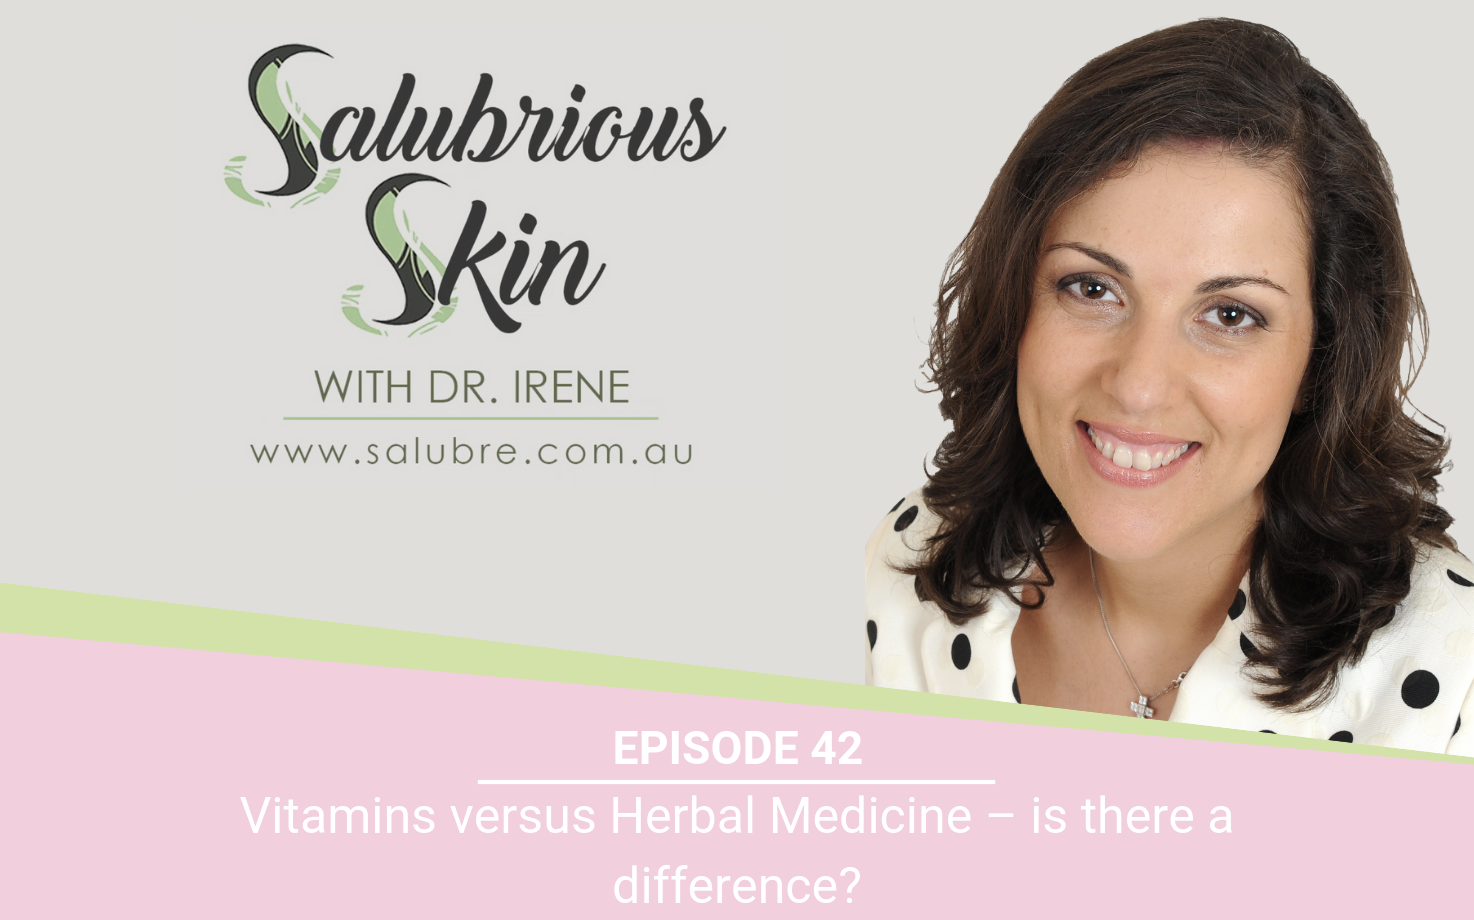 Podcast 42: What makes a skincare product effective?